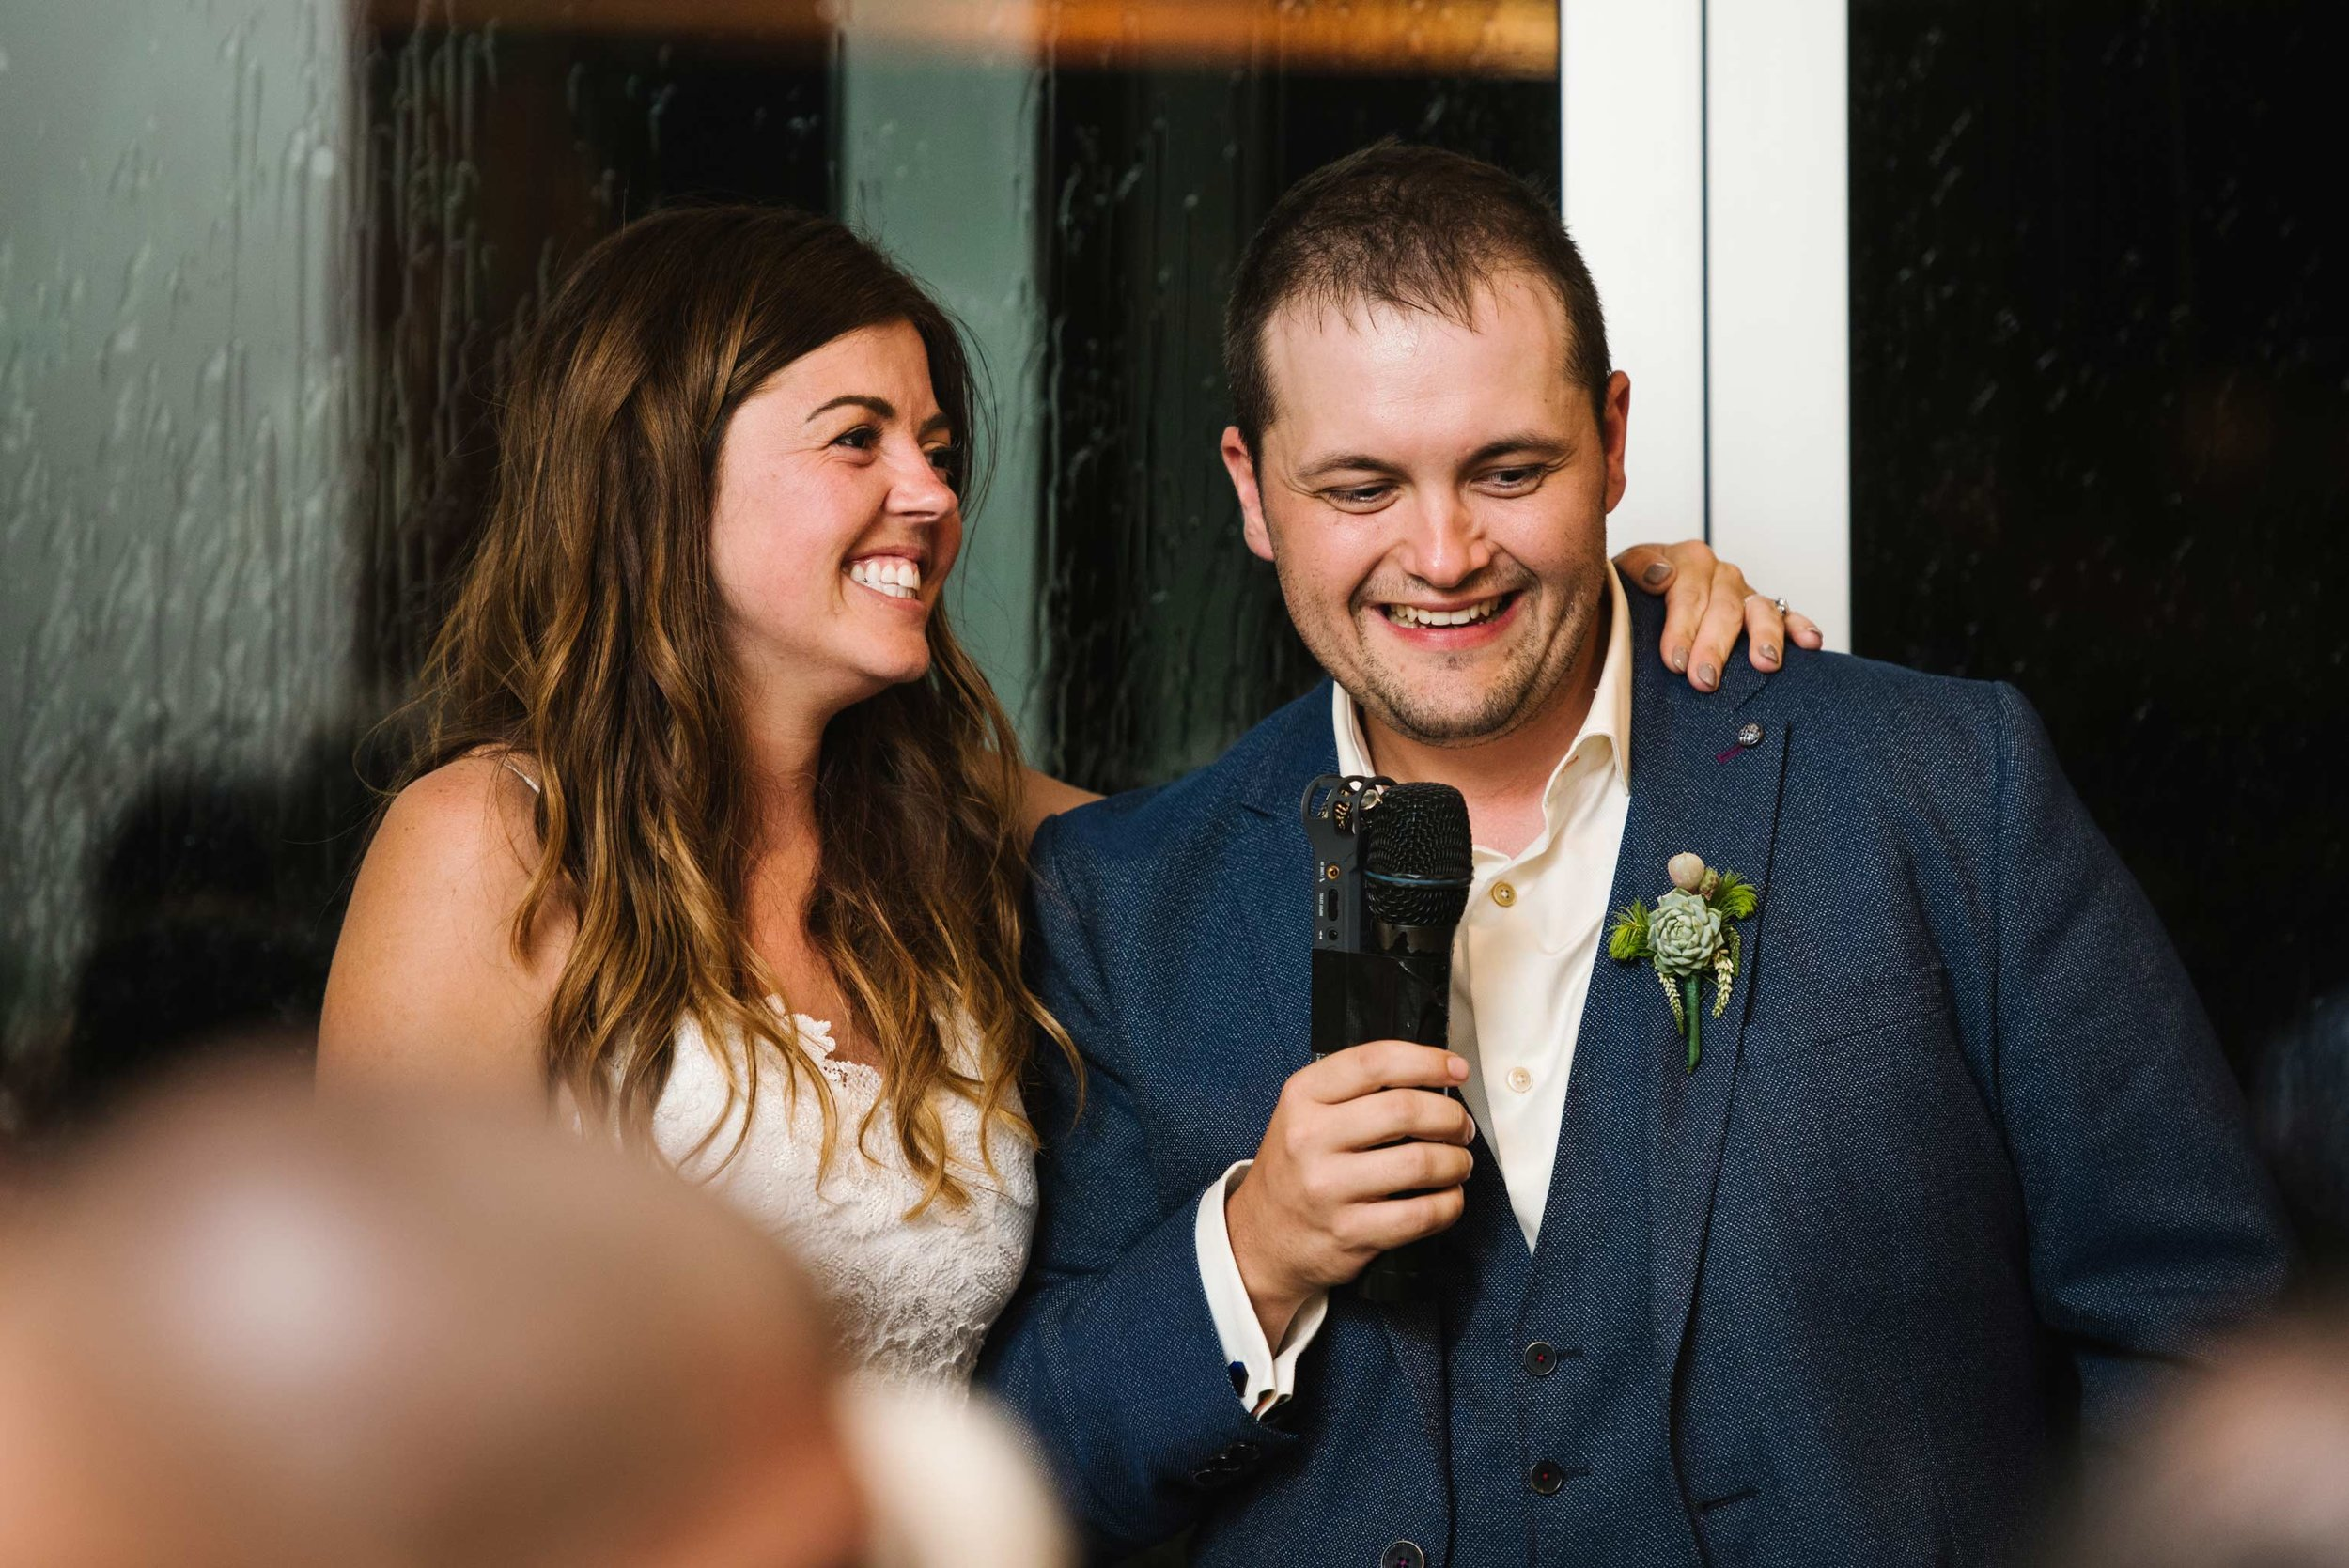 Newlyweds laughing during speeches